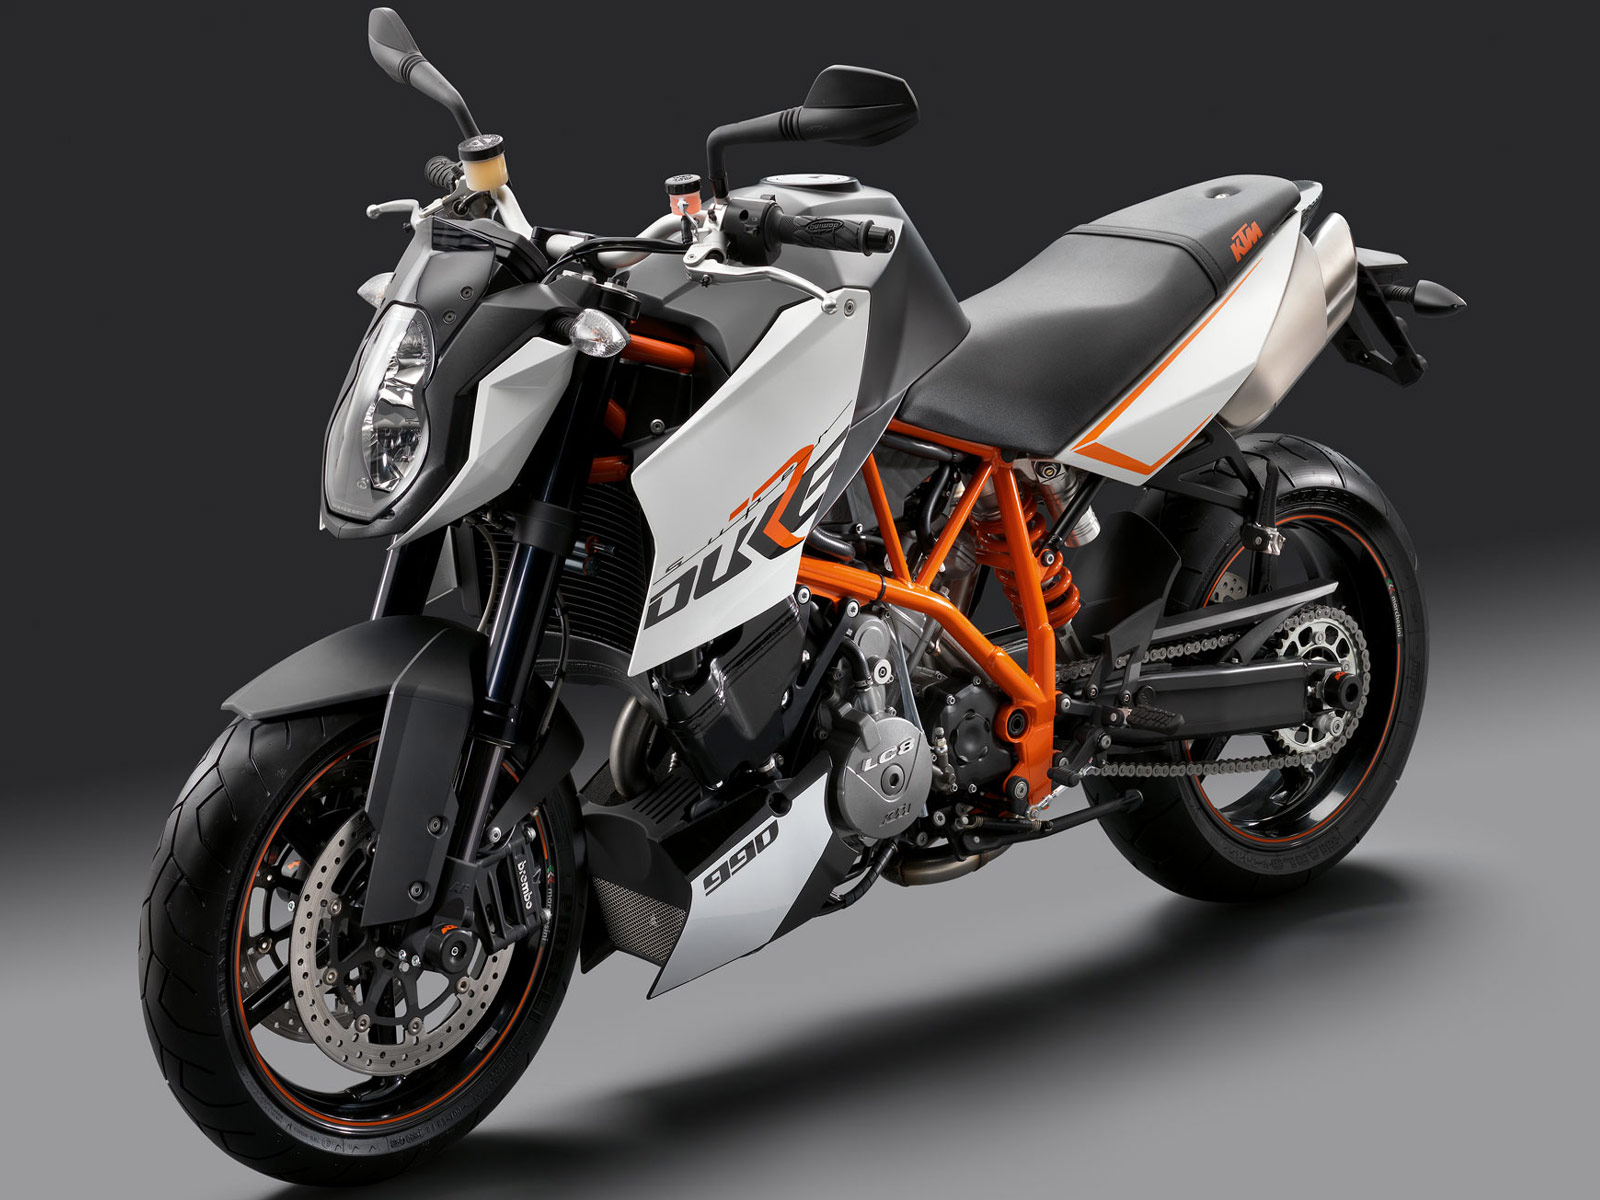 Motorcycle Duke Ktm 640 Lc4 Wiring Diagram Images